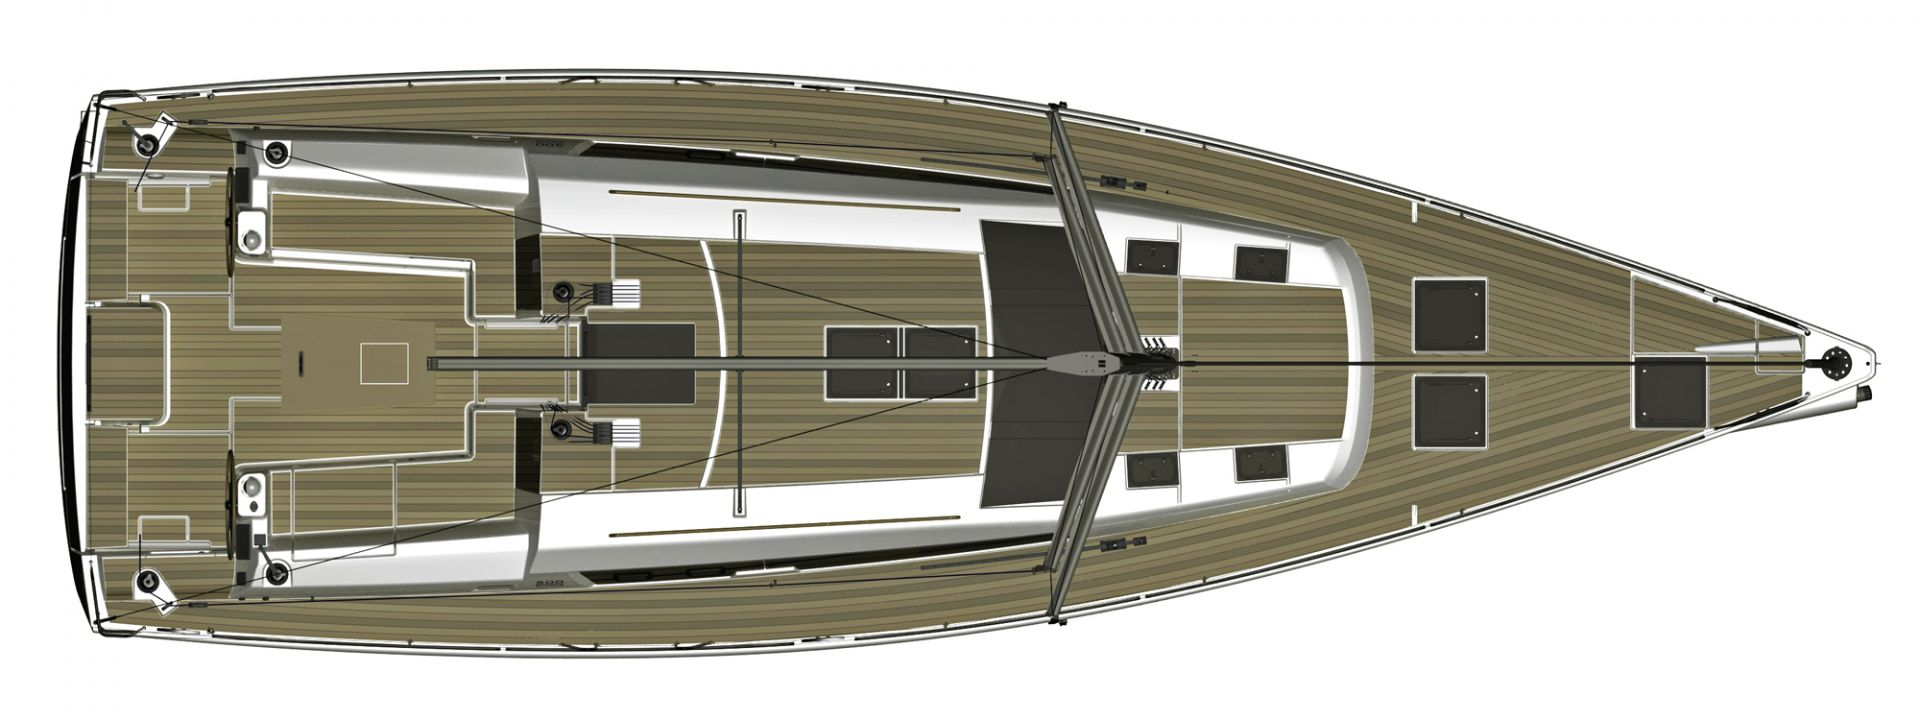 Dufour 512 Grand Large - deck.jpg